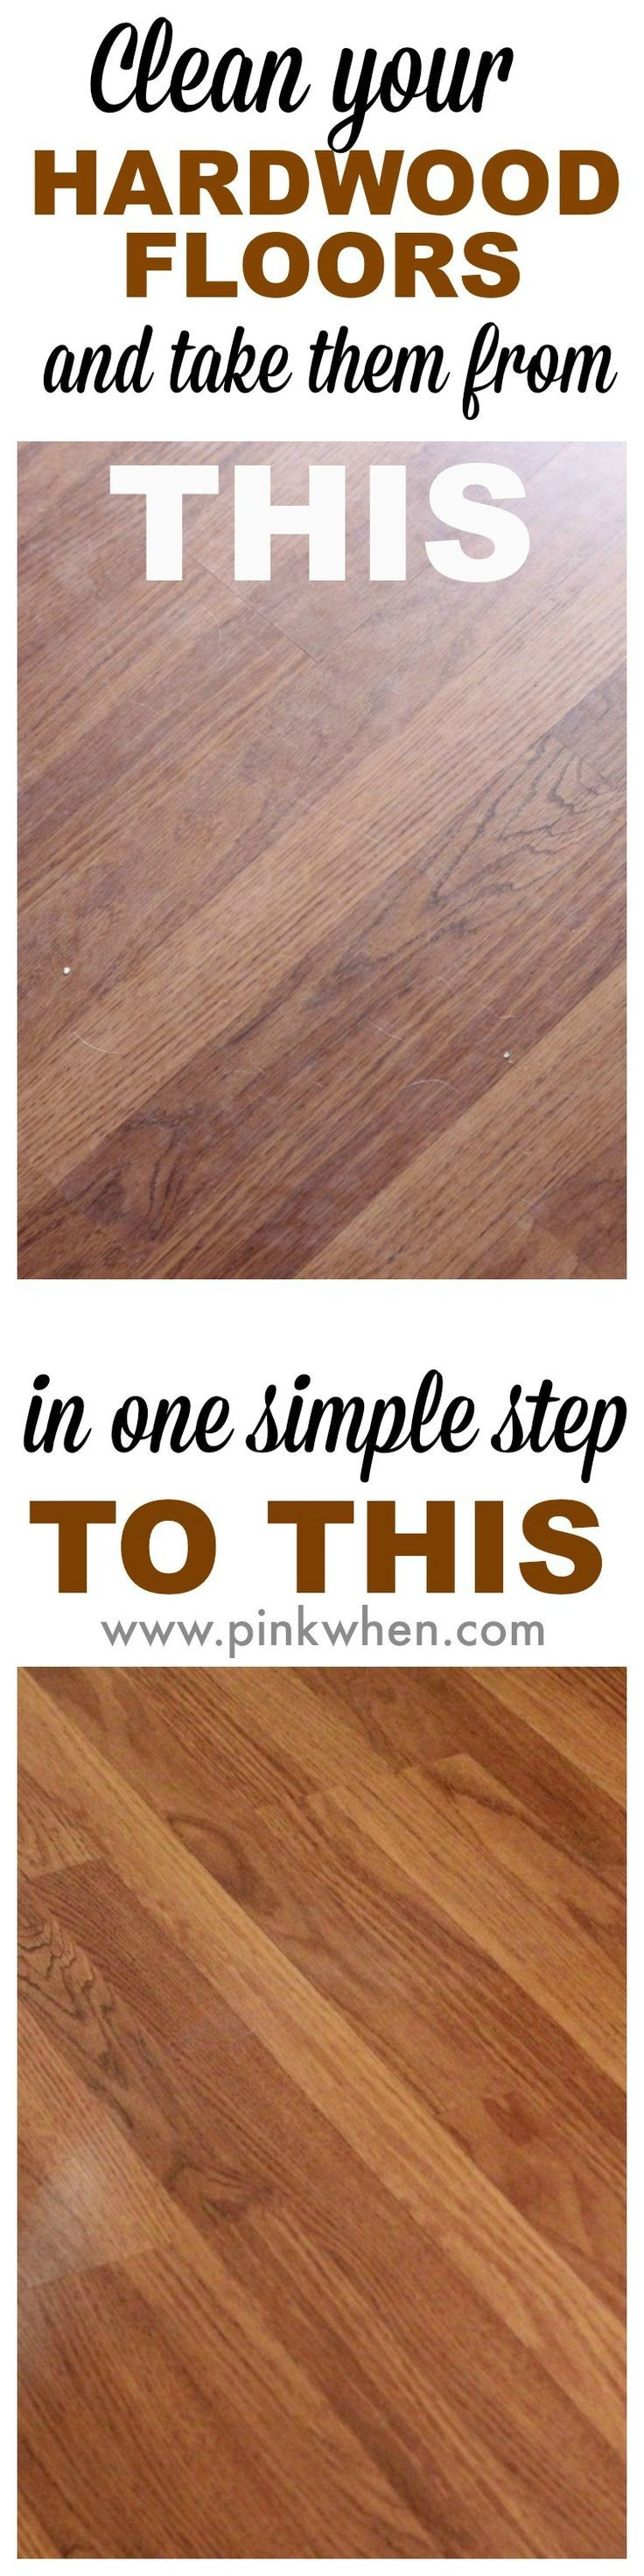 hardwood floor vacuum and steam cleaner reviews of 19 awesome steam clean hardwood floors images dizpos com pertaining to steam clean hardwood floors inspirational 84 best hardwood floor care tips images on pinterest images of